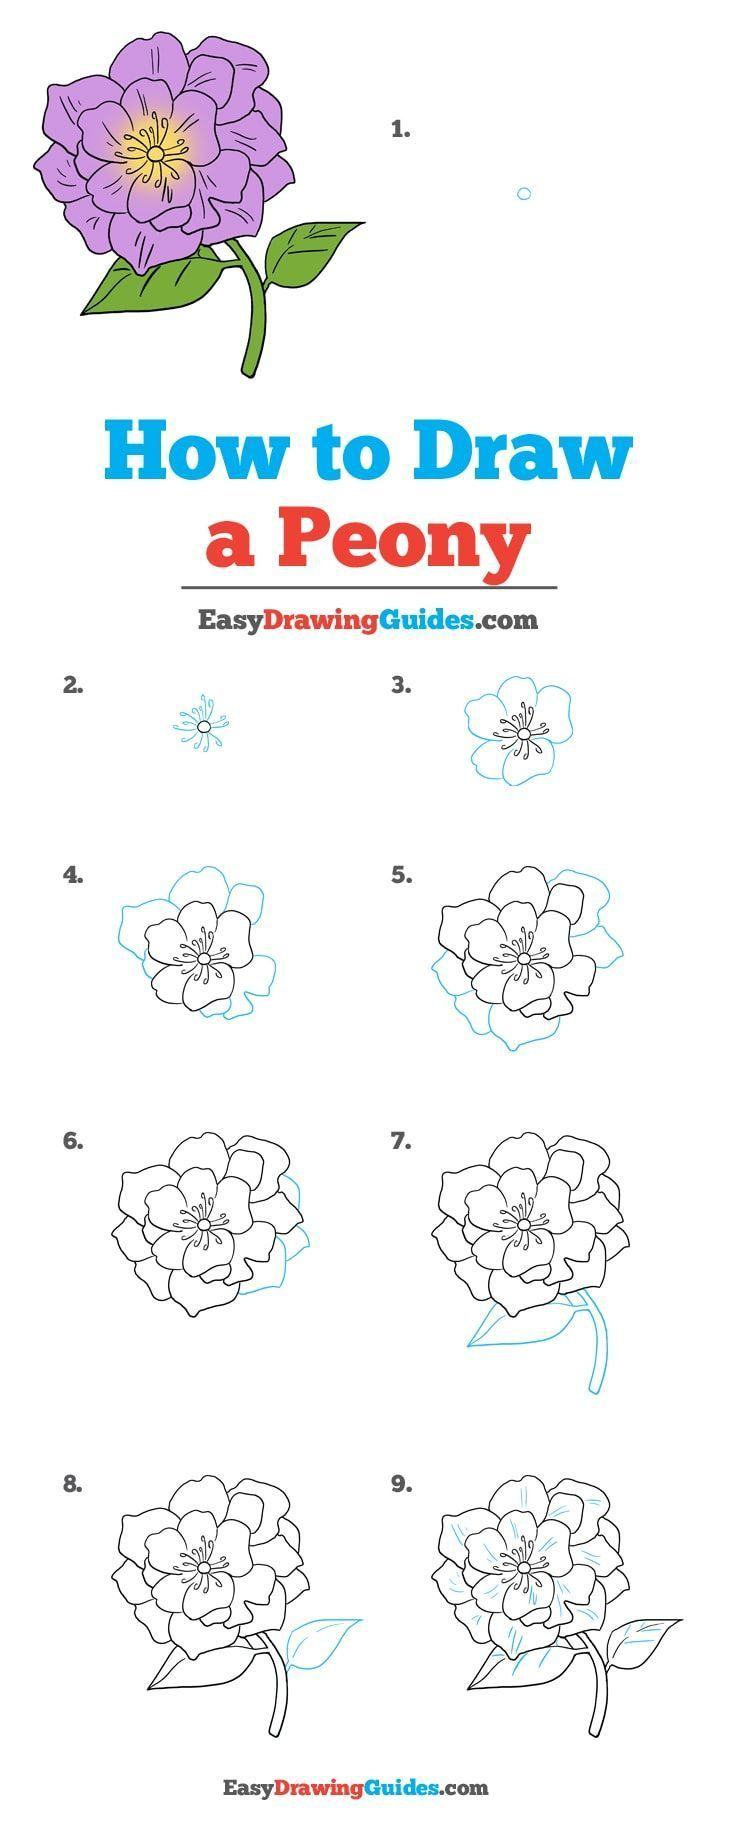 How to Draw a Peony | Flower drawing tutorials, Peony ...